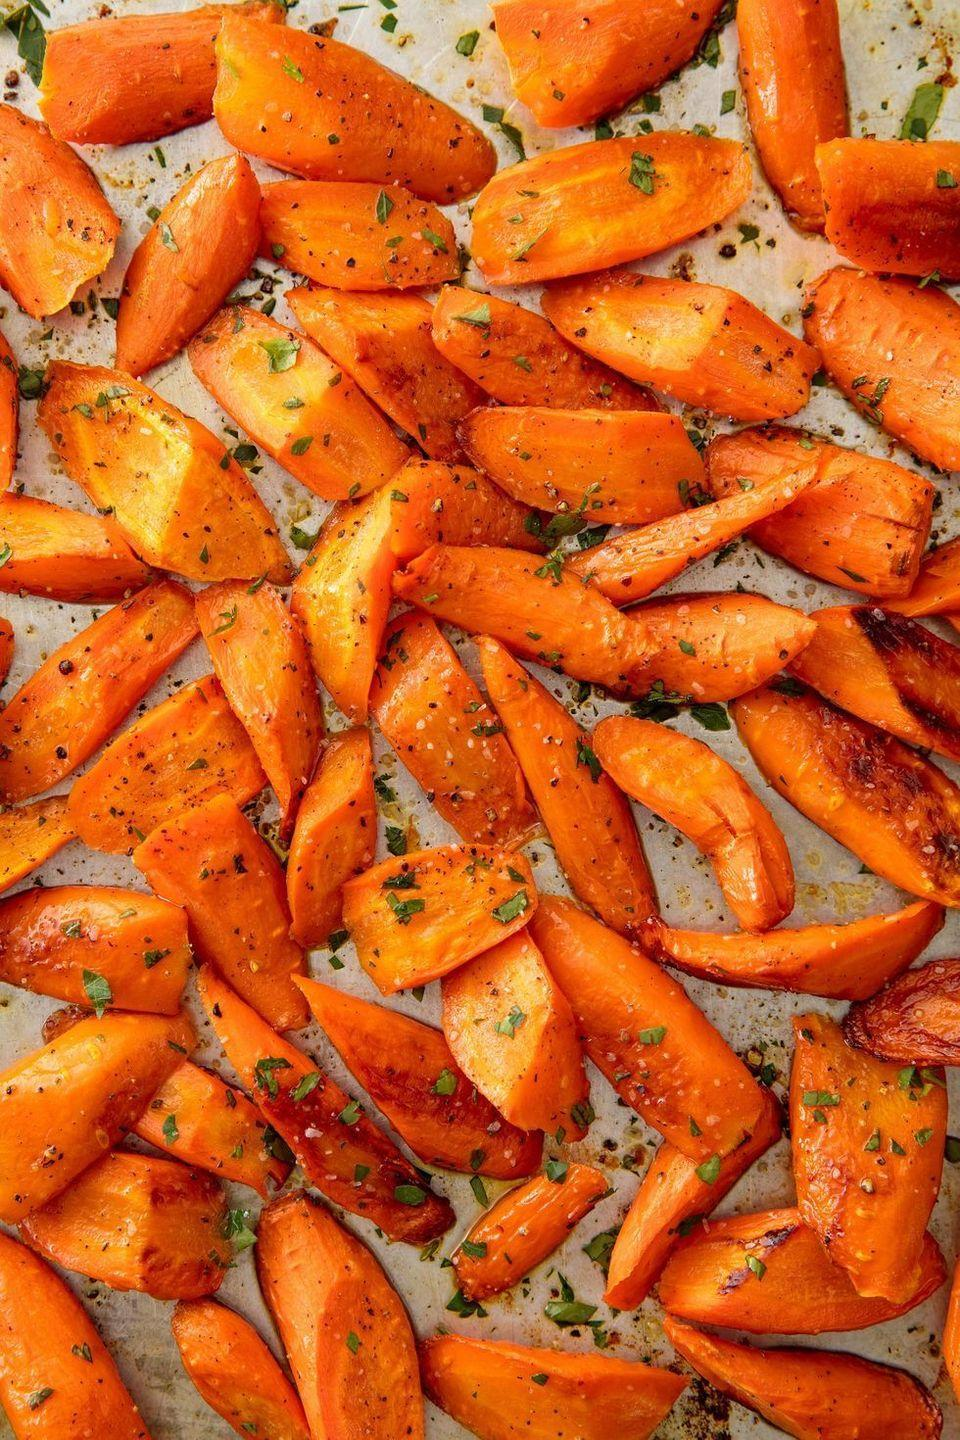 """<p>Our biggest piece of advice: Don't overcrowd the pan.</p><p>Get the <a href=""""https://www.delish.com/uk/cooking/recipes/a29571518/oven-roasted-carrots-recipe/"""" rel=""""nofollow noopener"""" target=""""_blank"""" data-ylk=""""slk:Roasted Carrots"""" class=""""link rapid-noclick-resp"""">Roasted Carrots</a> recipe.</p>"""